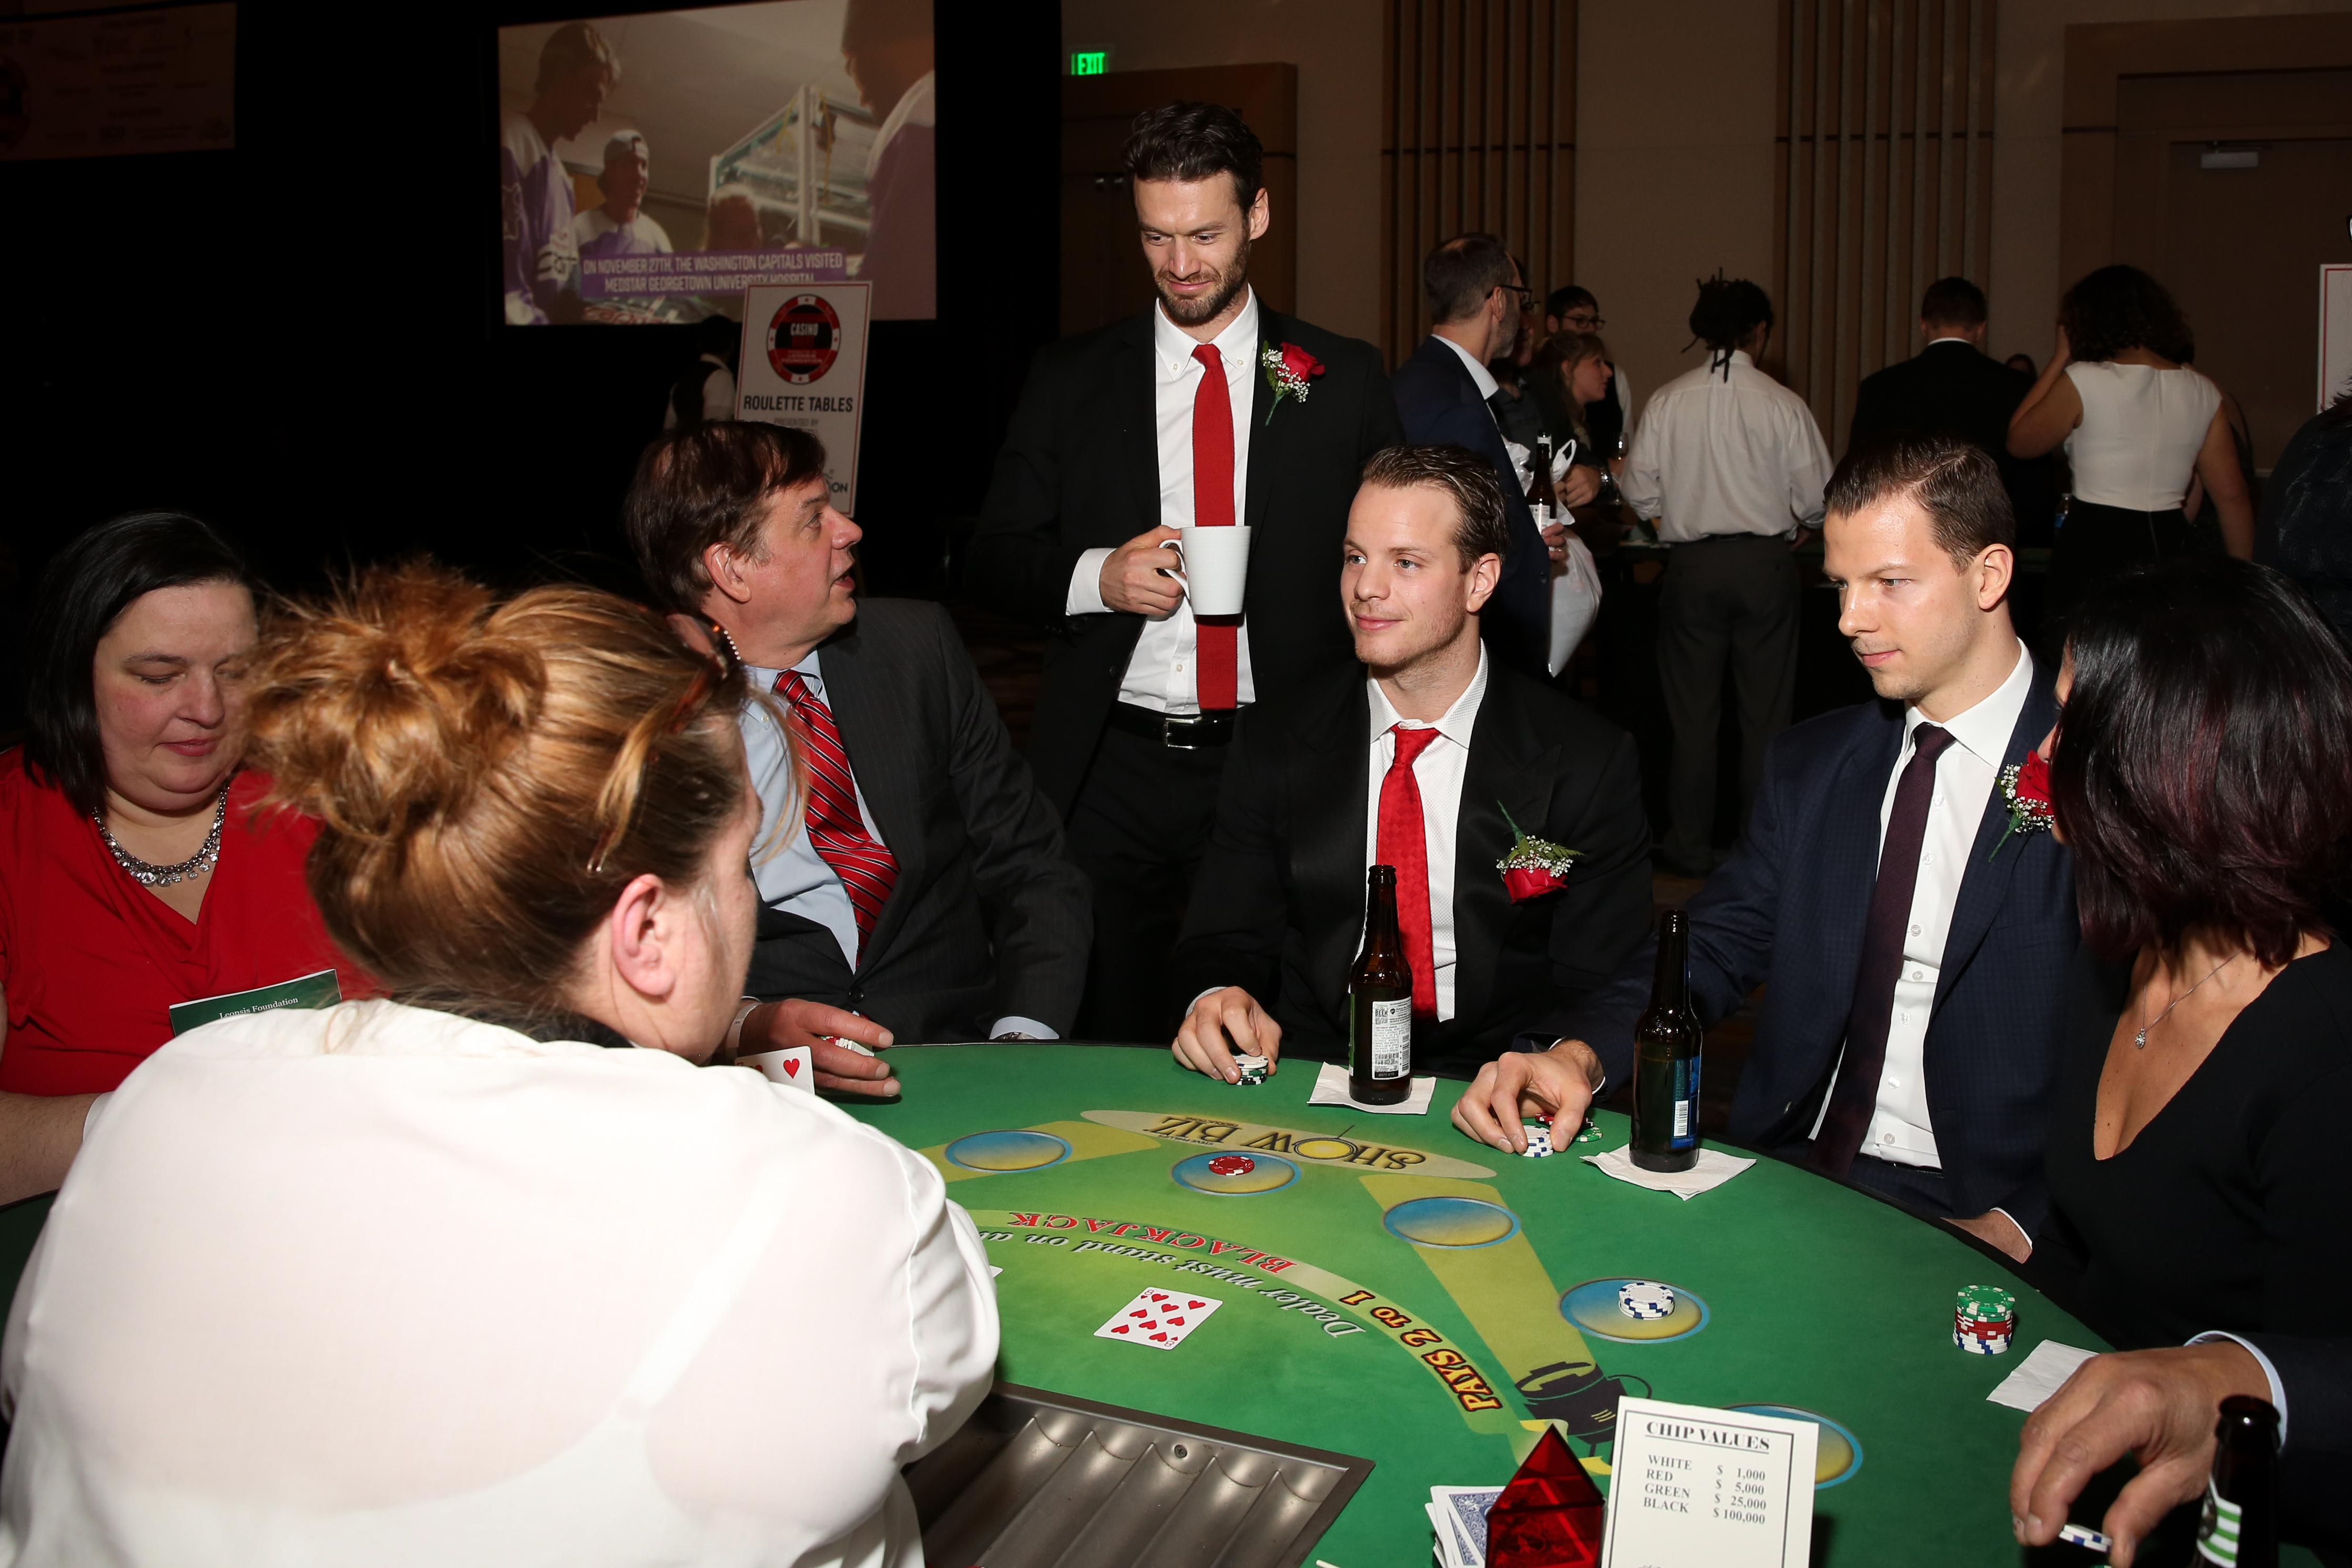 Players from the Washington Capitals mingled with fans at their annual Casino Night, which was held at MGM National Harbor, on January 4. The proceeds of the evening  went to charity and gave fans a chance to get up close and personal with their favorite hockey players over the poker table. (Amanda Andrade-Rhoades/DC Refined)